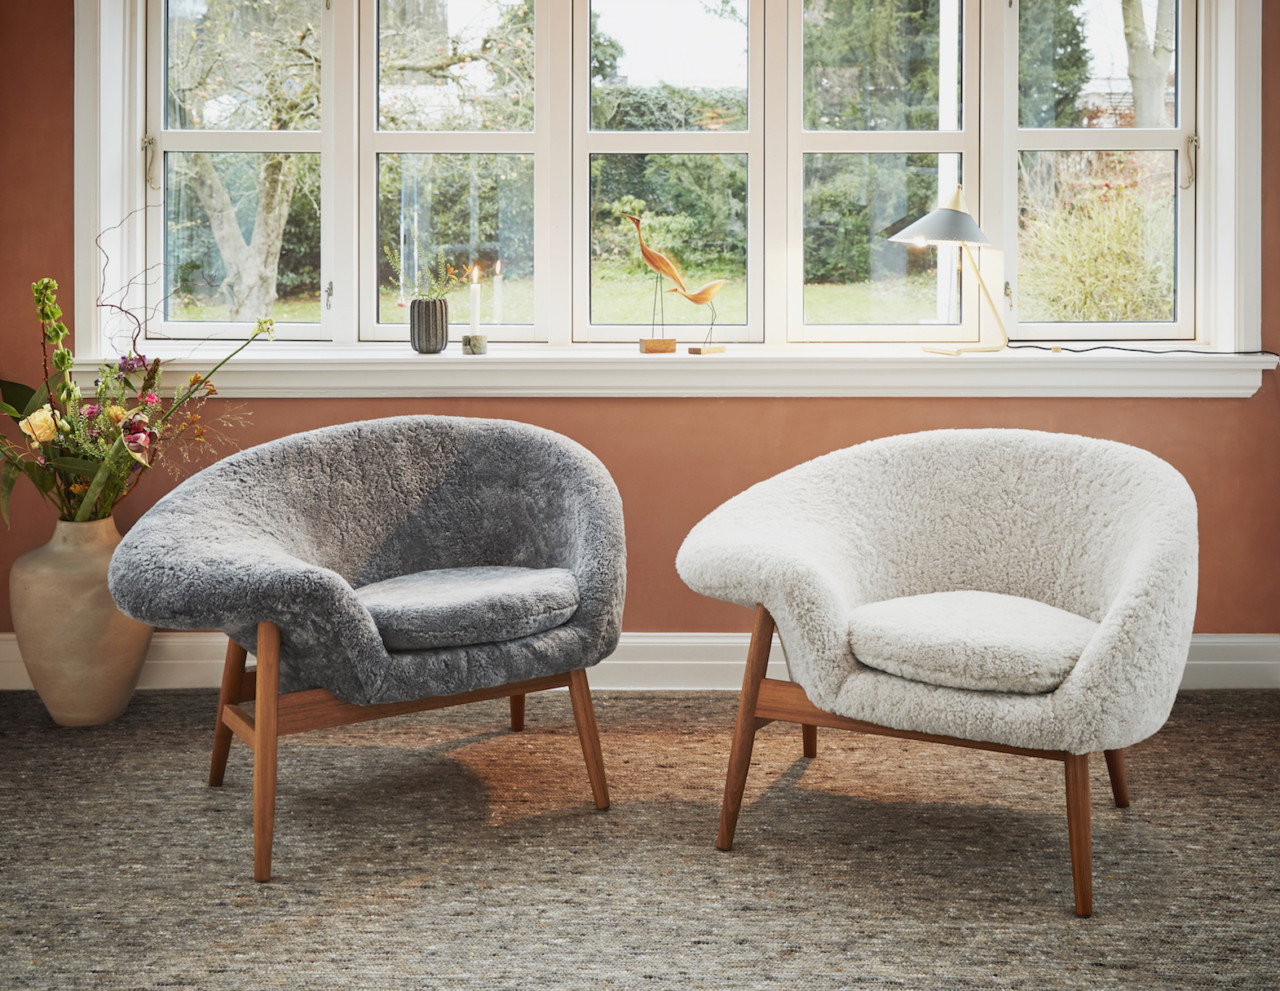 Cozying up in a Sheepskin Fried Egg from Warm Nordic